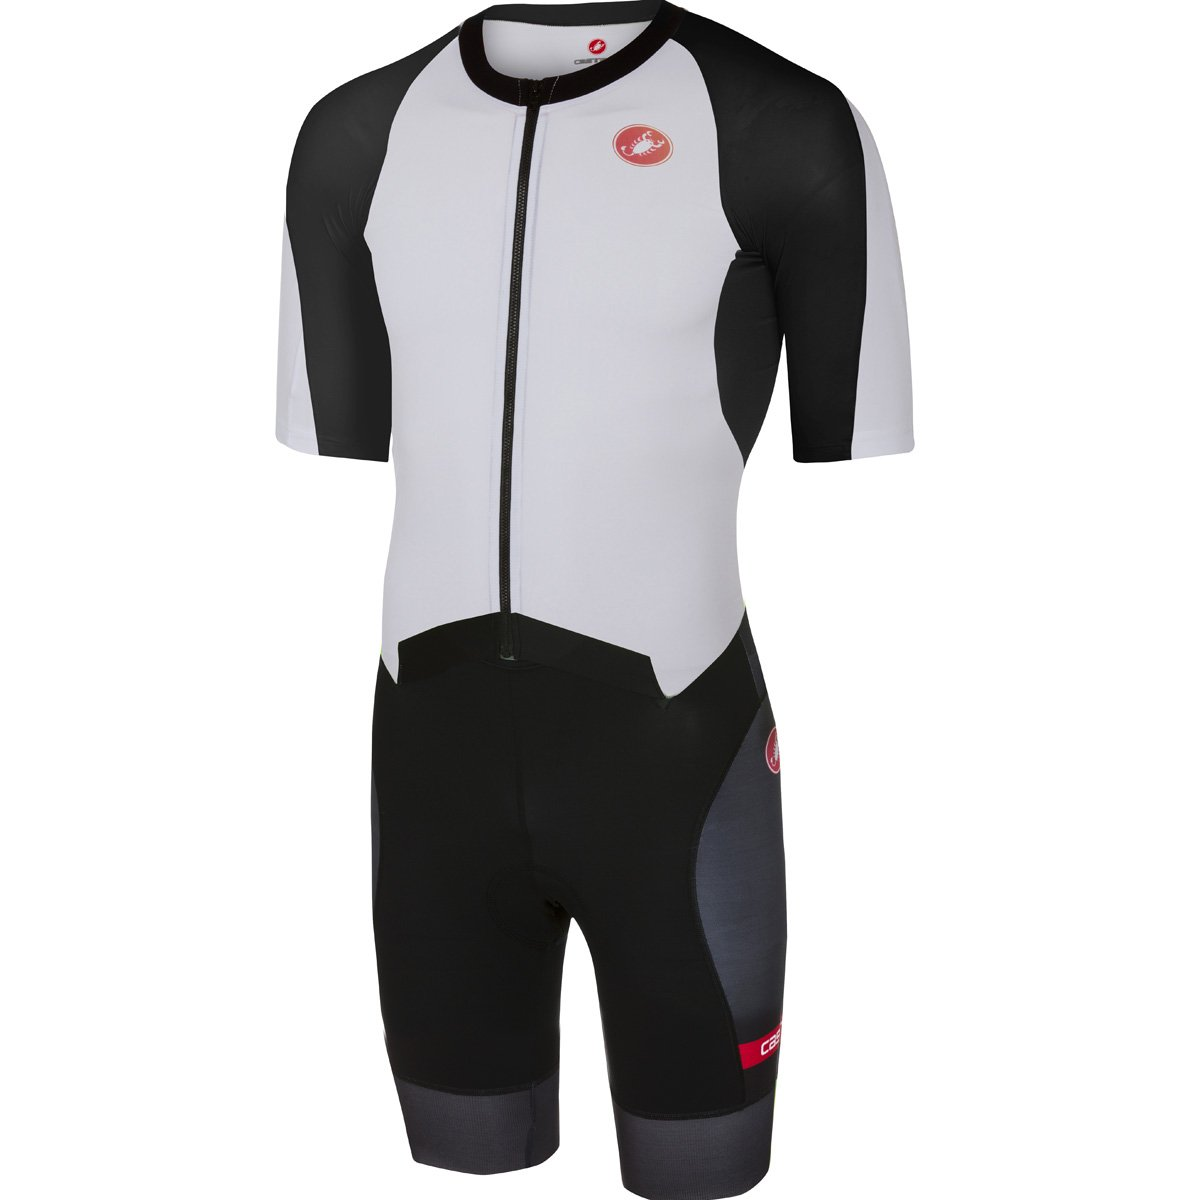 CastelliメンズAll Out速度Tri Suit Large ホワイト B079RM4441